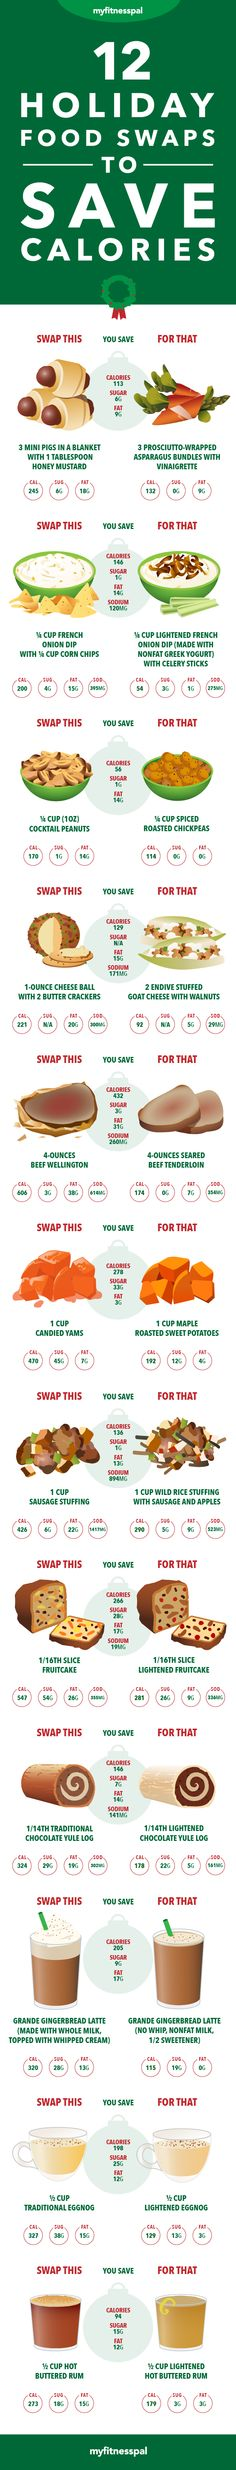 Save calories this holiday season by going for these healthier alternatives!